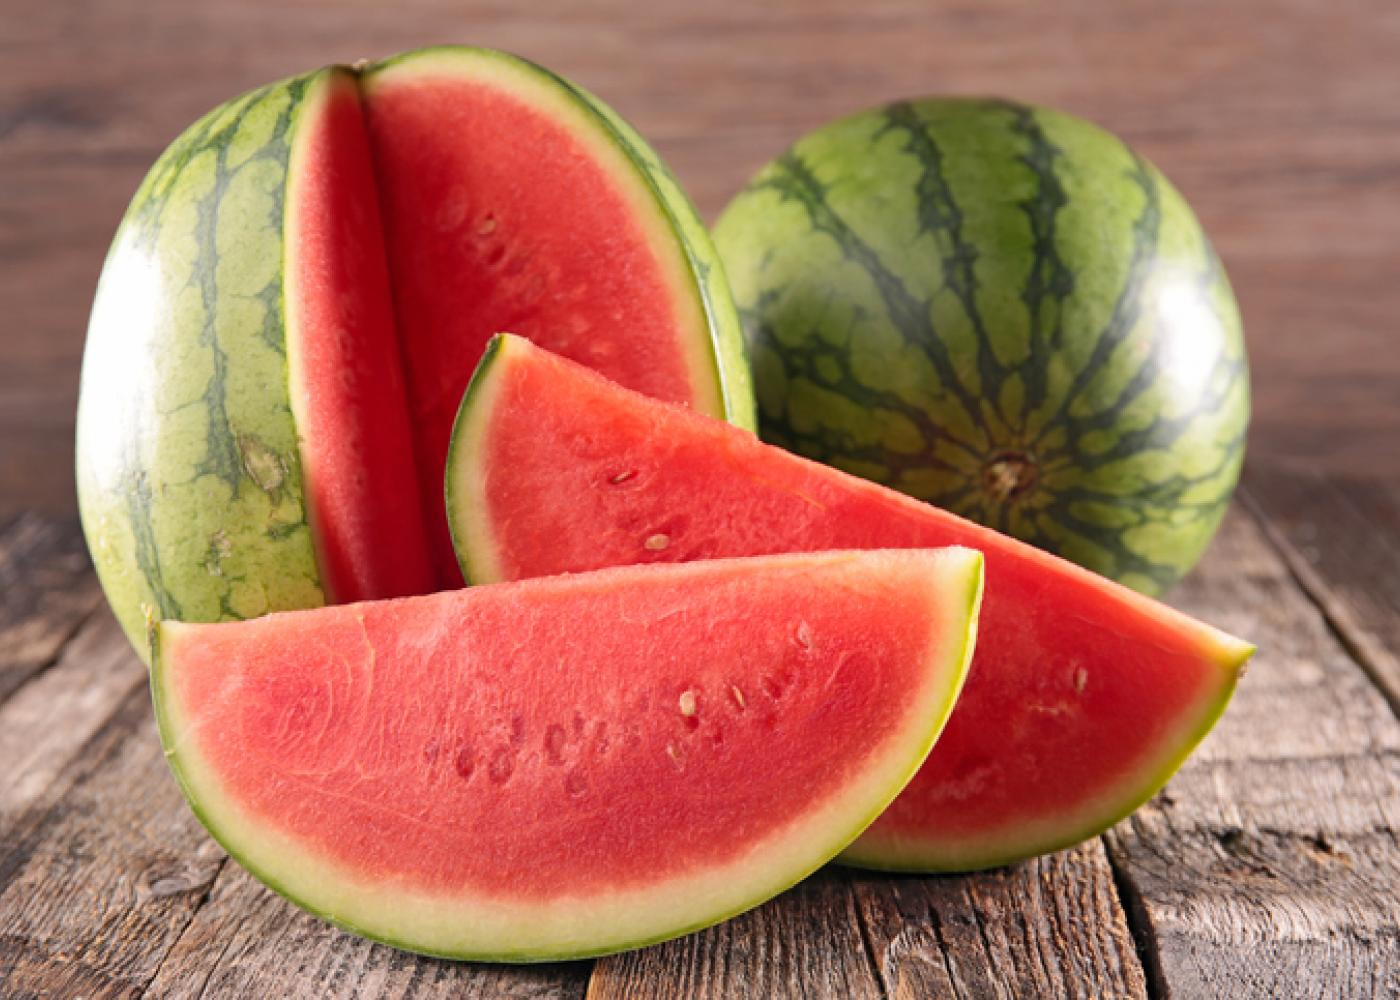 Watermelon nutrition